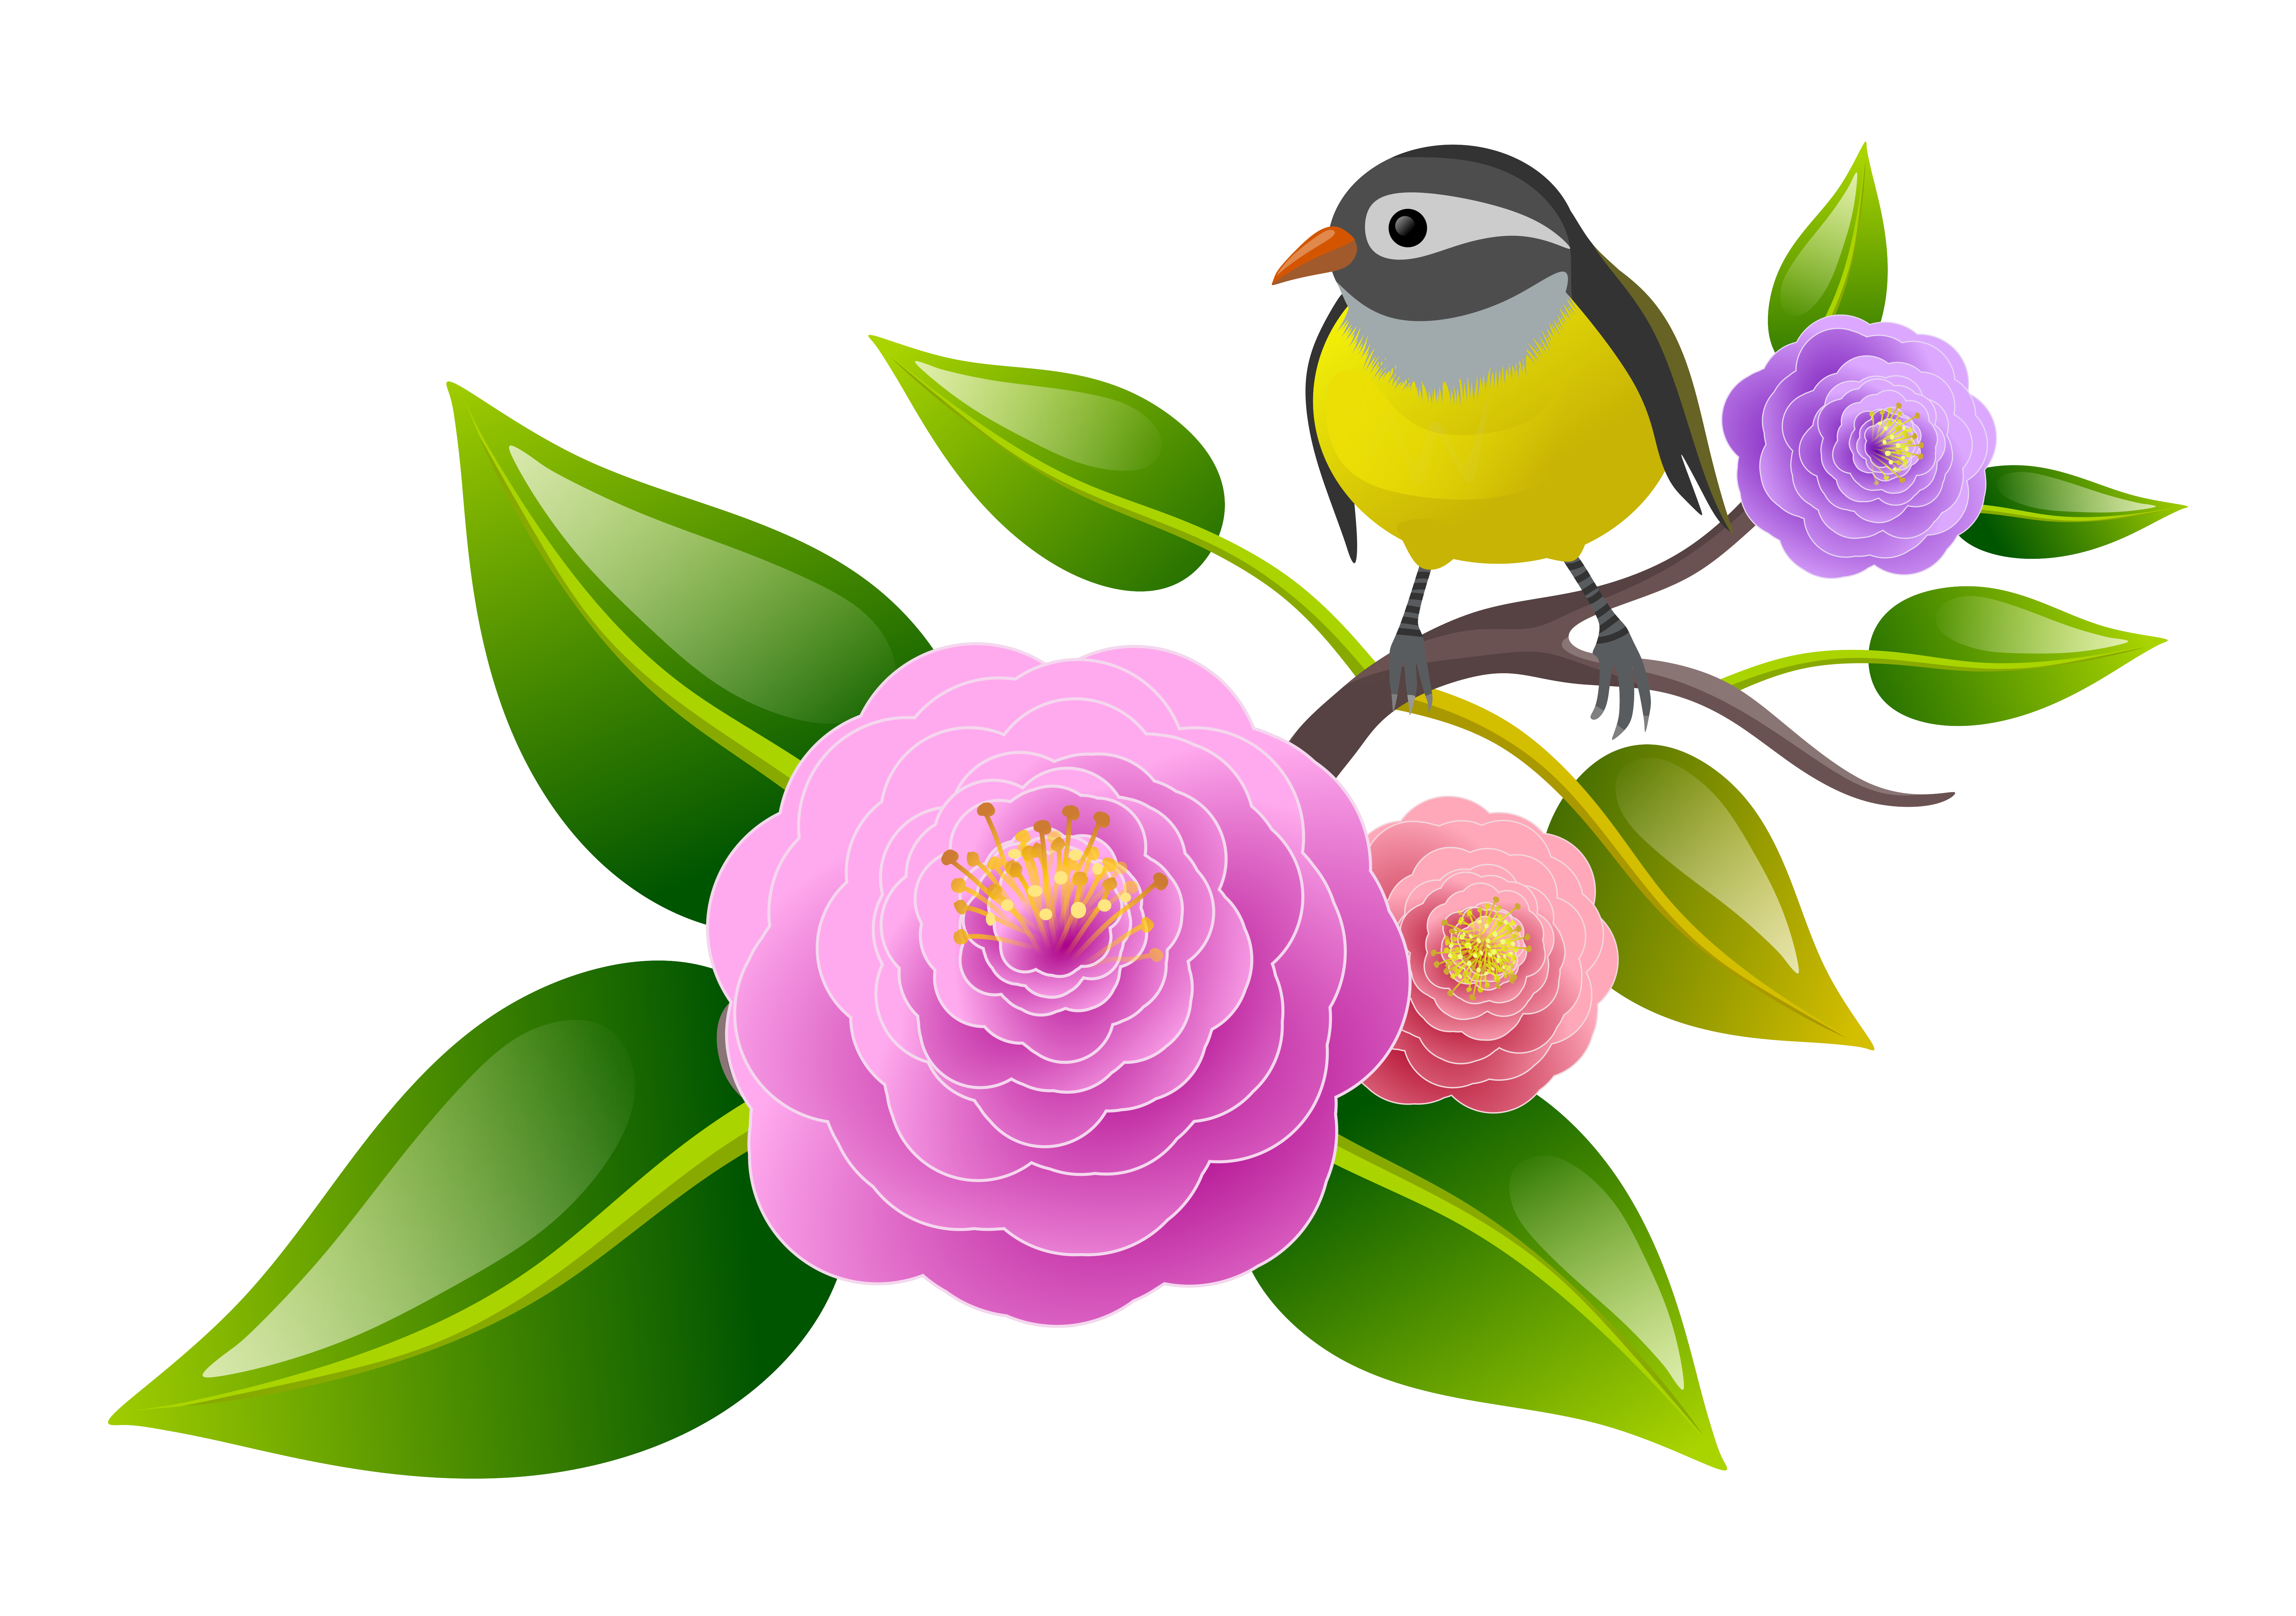 Download Free Floral Bird Graphic By Americodealmeida Creative Fabrica for Cricut Explore, Silhouette and other cutting machines.